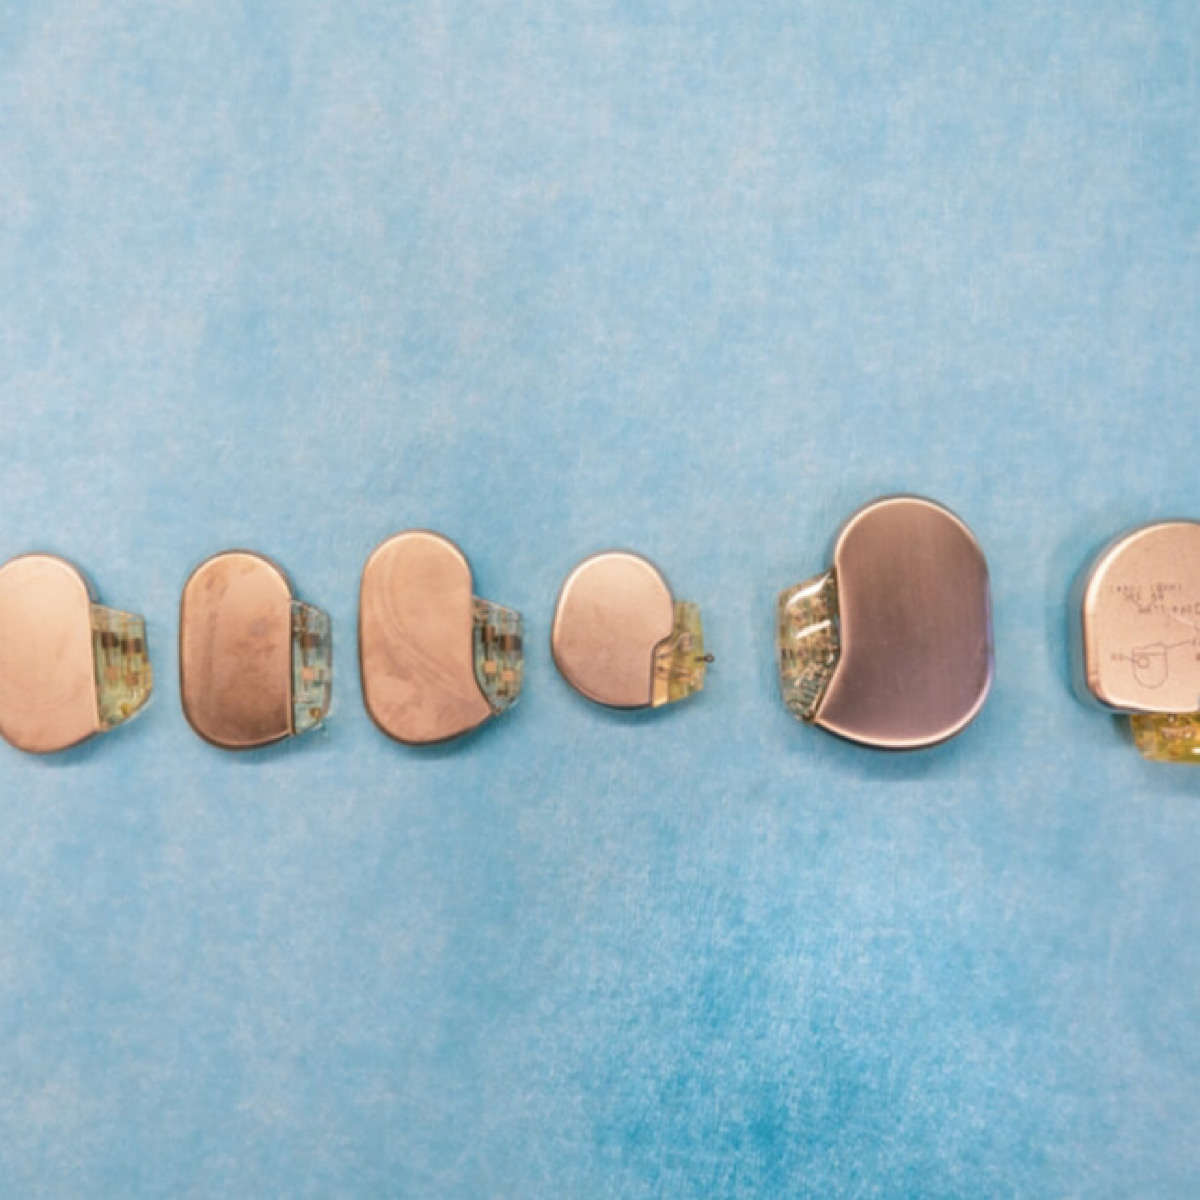 Scientists devise a battery-free pacemaker that can be absorbed by the body